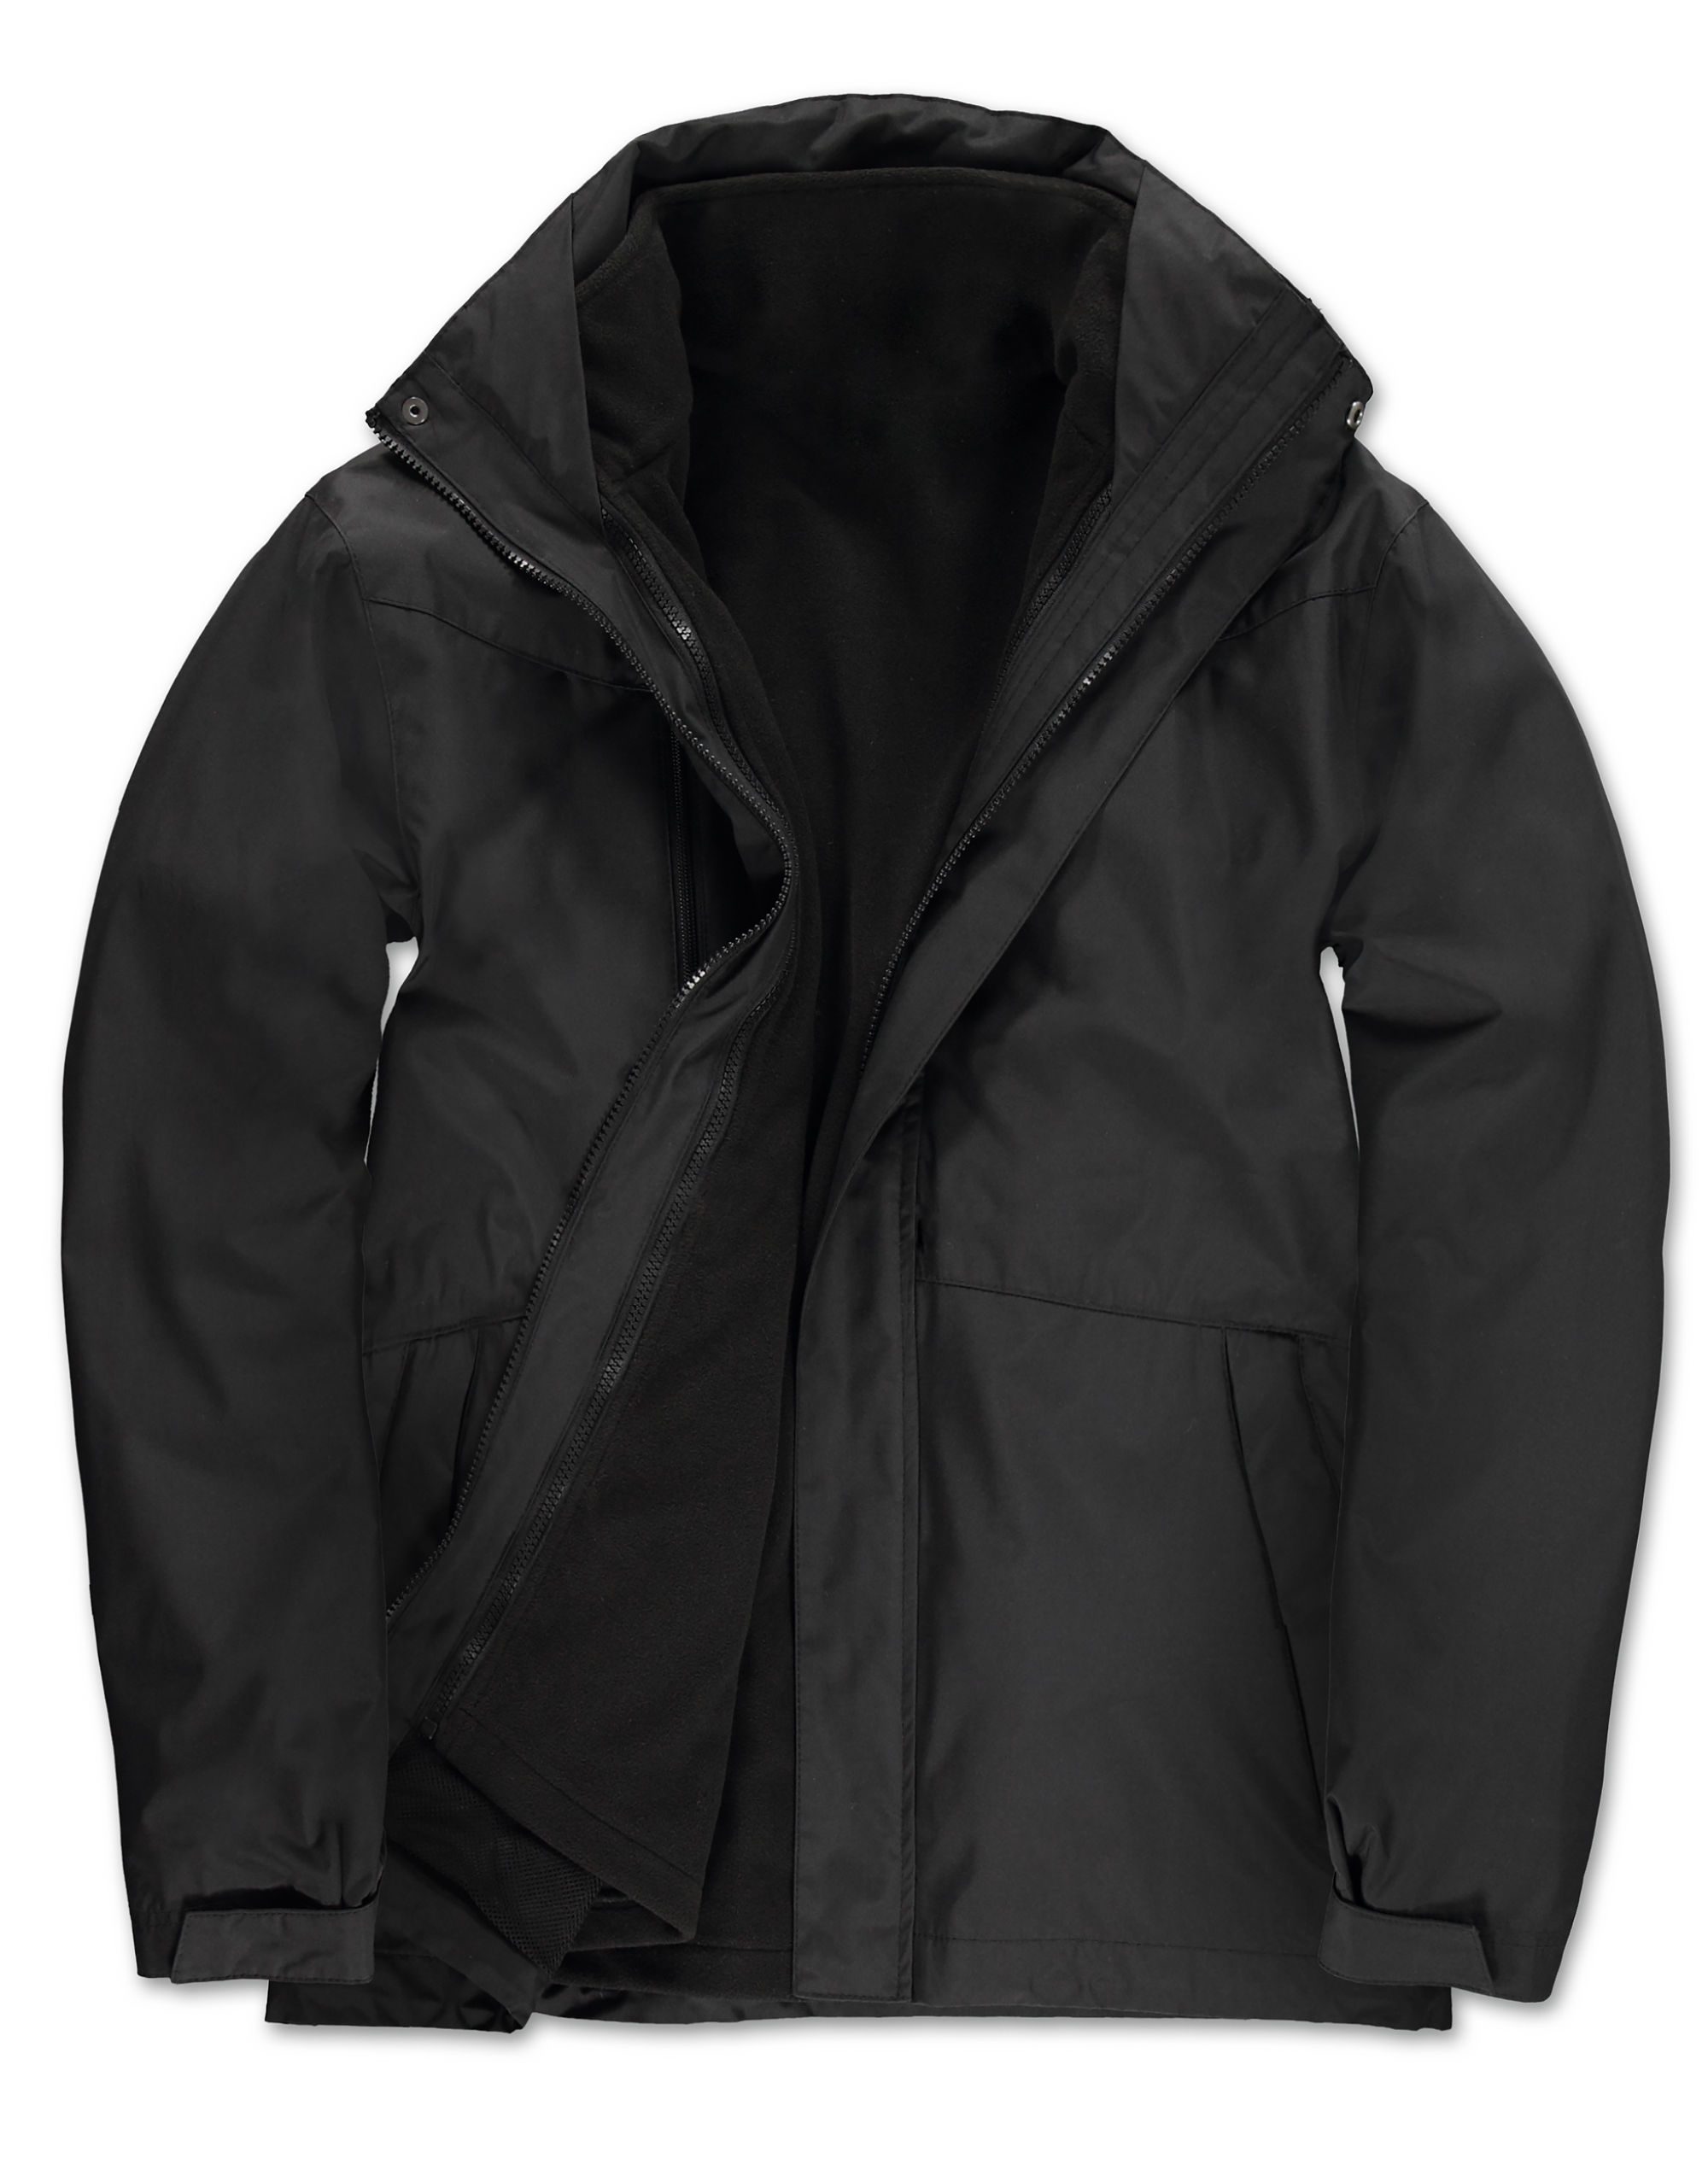 B&c Corporate 3 In 1 Jacket Mens